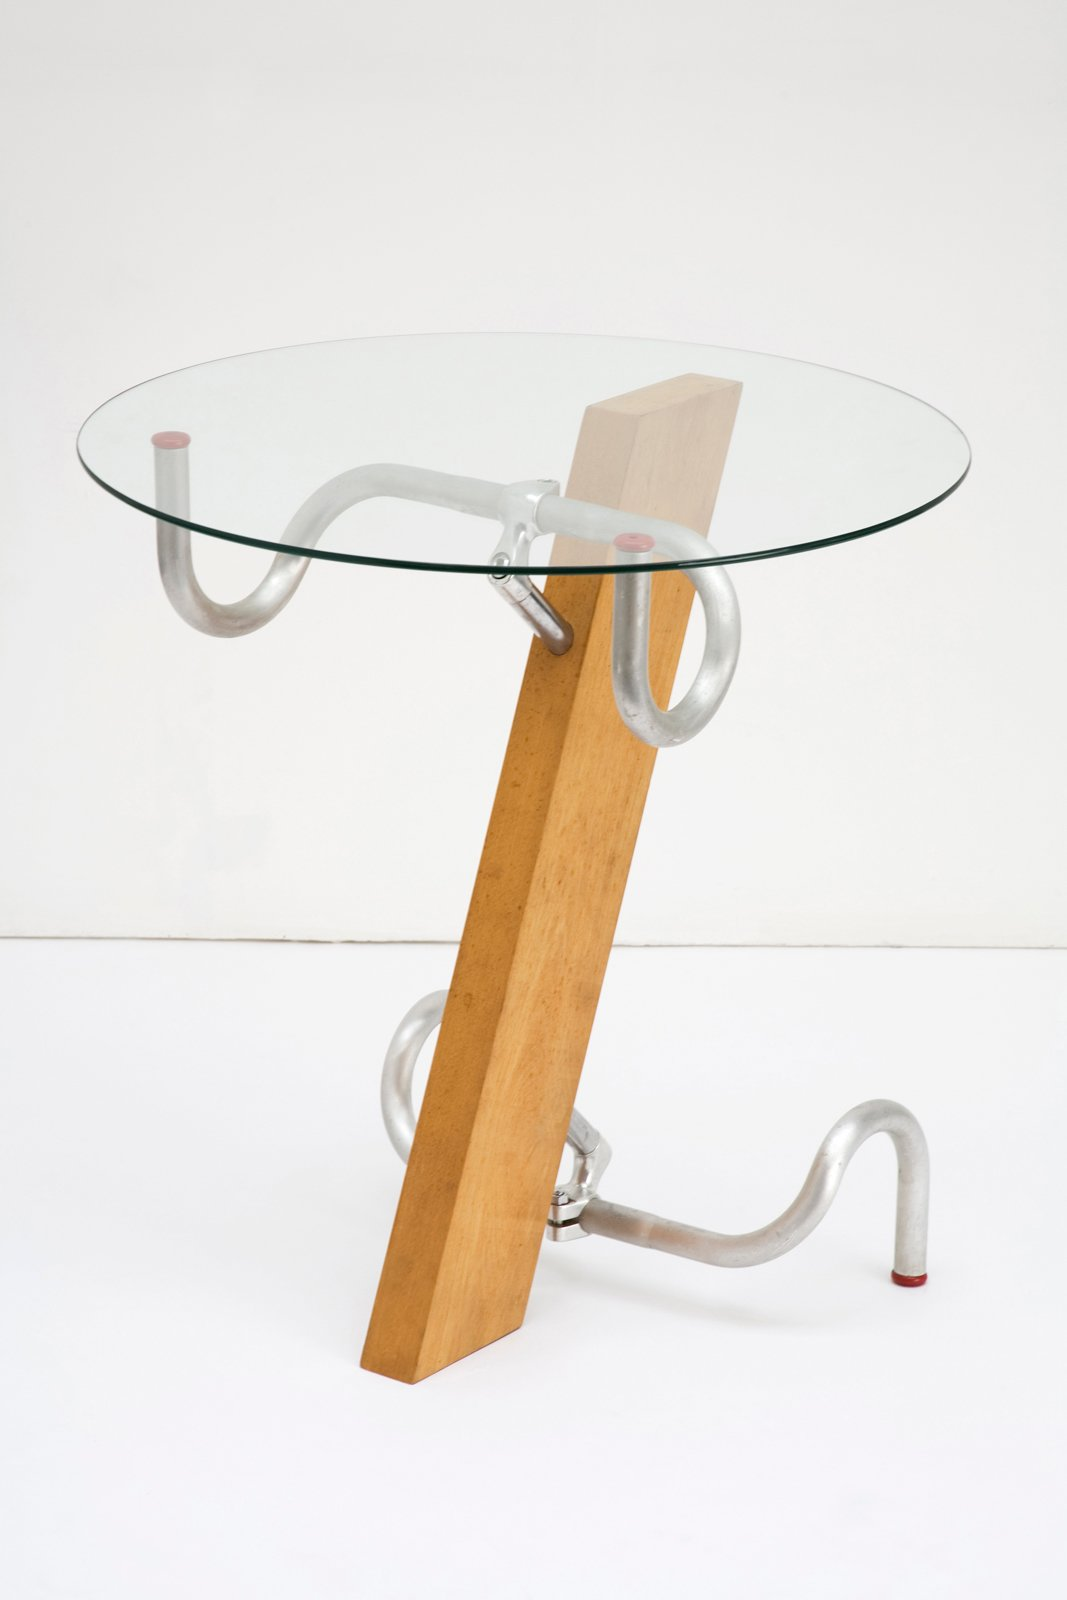 "Early in Jasper Morrison's career, he built a table of beech wood, glass, and two bicycle racing bar handles to give the piece a ""mass-produced quality"" without benefit of a manufacturer. In 1983, the materials for one table cost about £20.00, and he sold them for five times that. ""The somewhat eclectic shape of the table itself was fitting to the mood of the time and my own frame of mind, a kind of poetic, anti-establishment, business-like attitude,"" Morrison is reported as saying years later.  Design Museum London's Extraordinary Stories about Ordinary Things by Rebecca L. Weber"